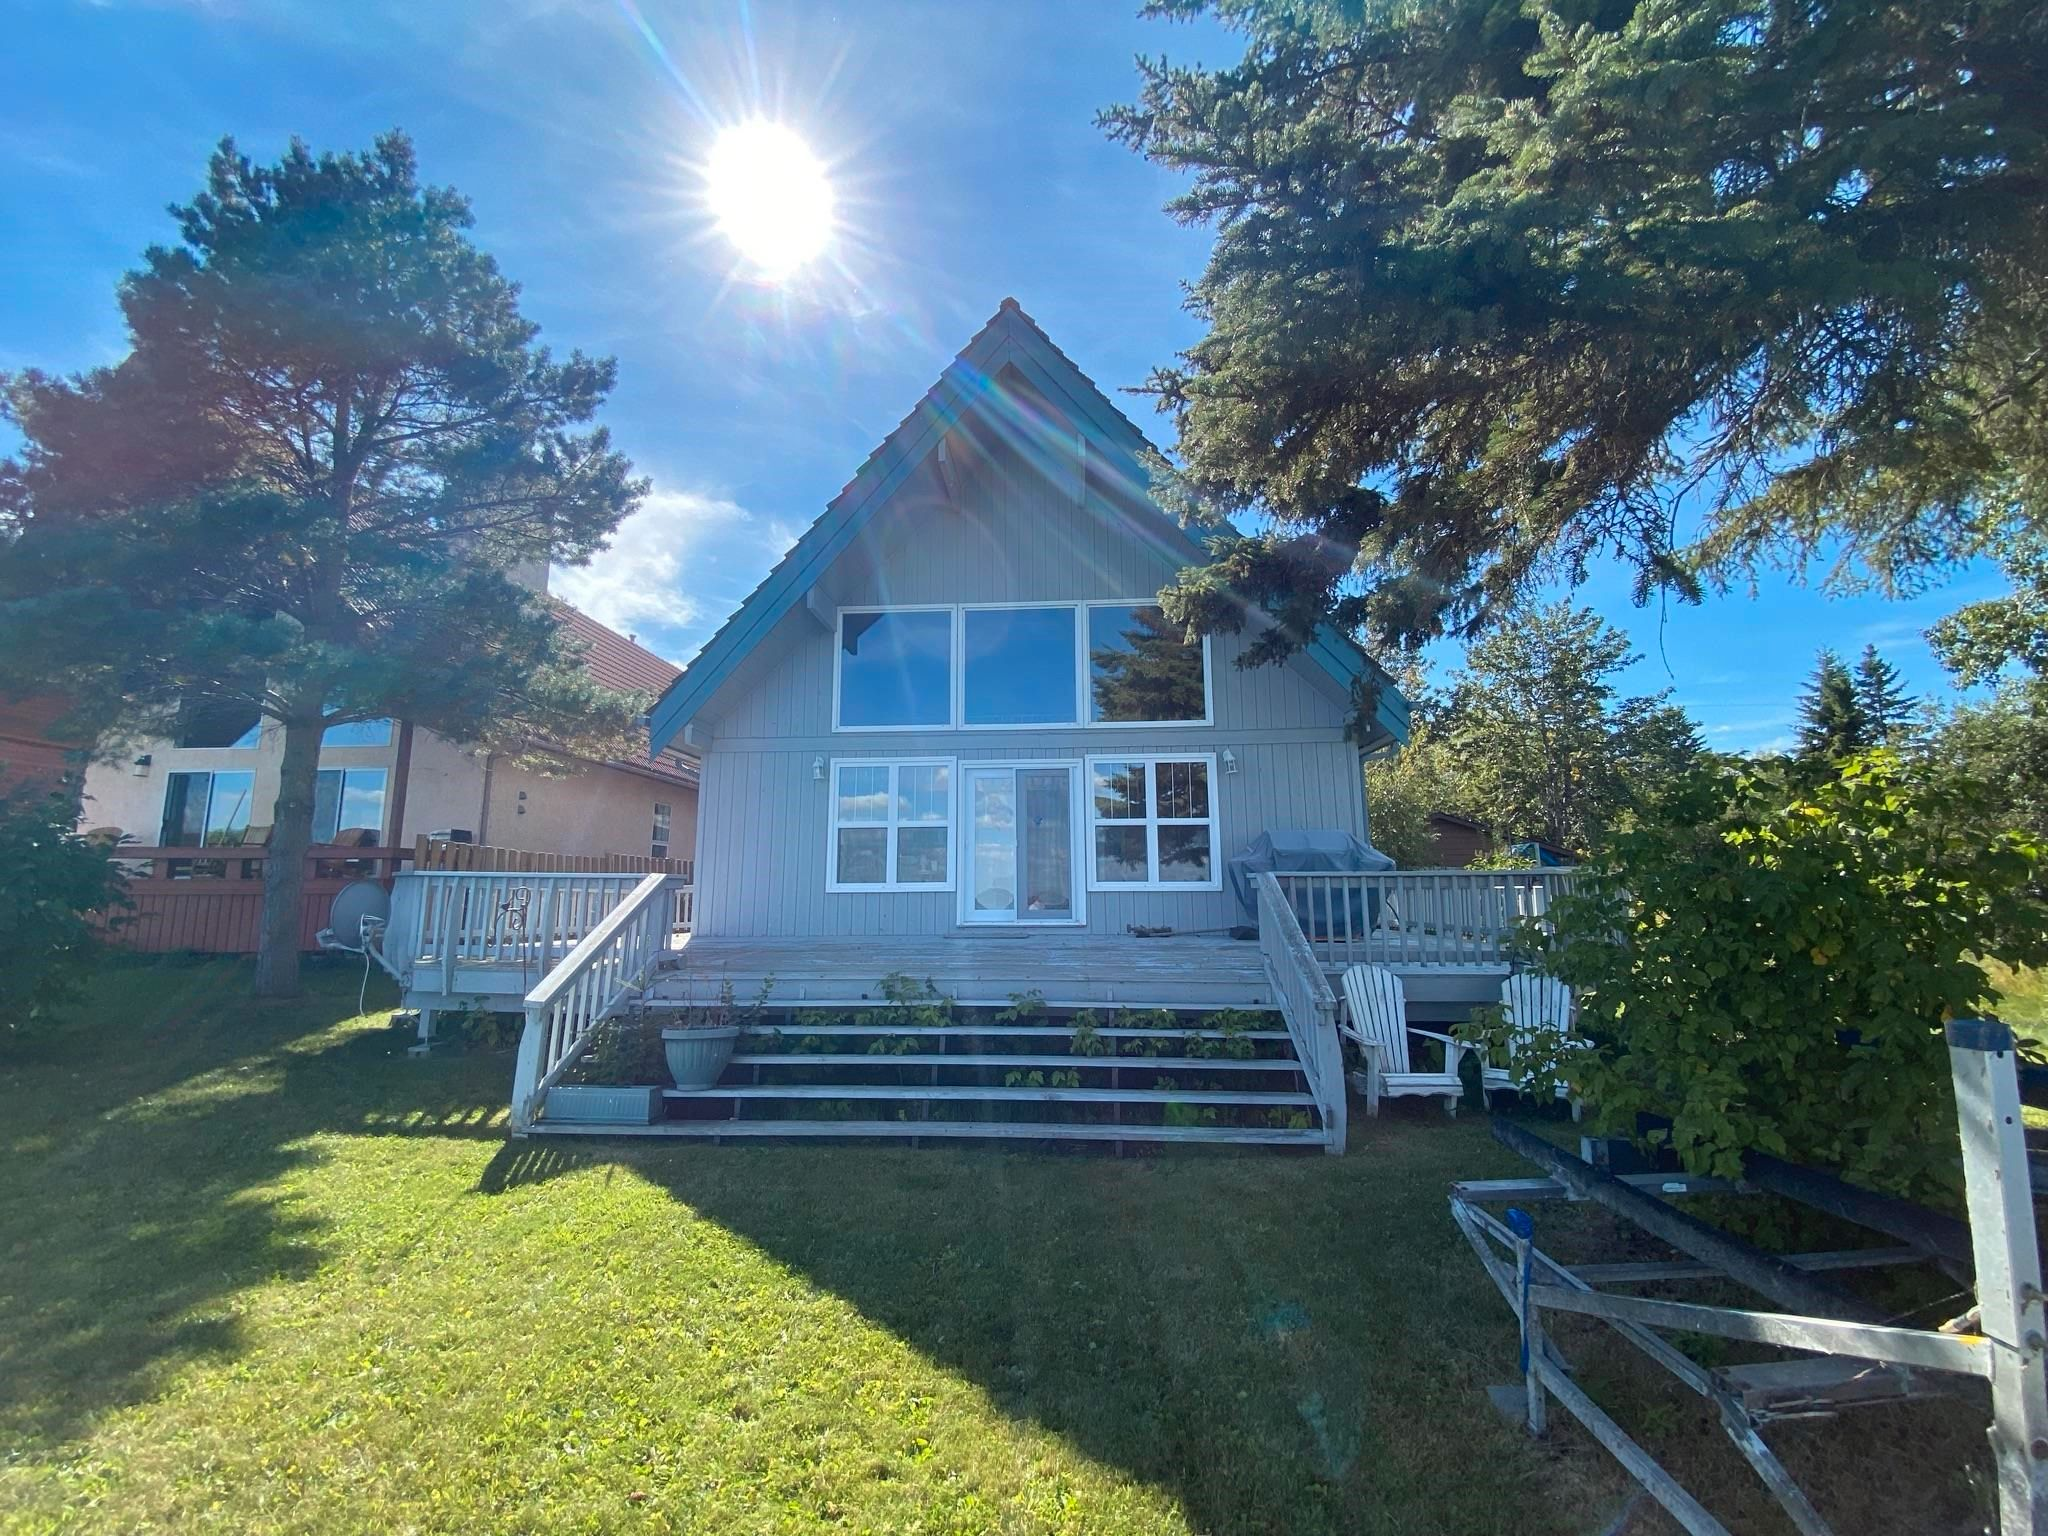 Main Photo: 330 Crystal Springs Close: Rural Wetaskiwin County House for sale : MLS®# E4265020